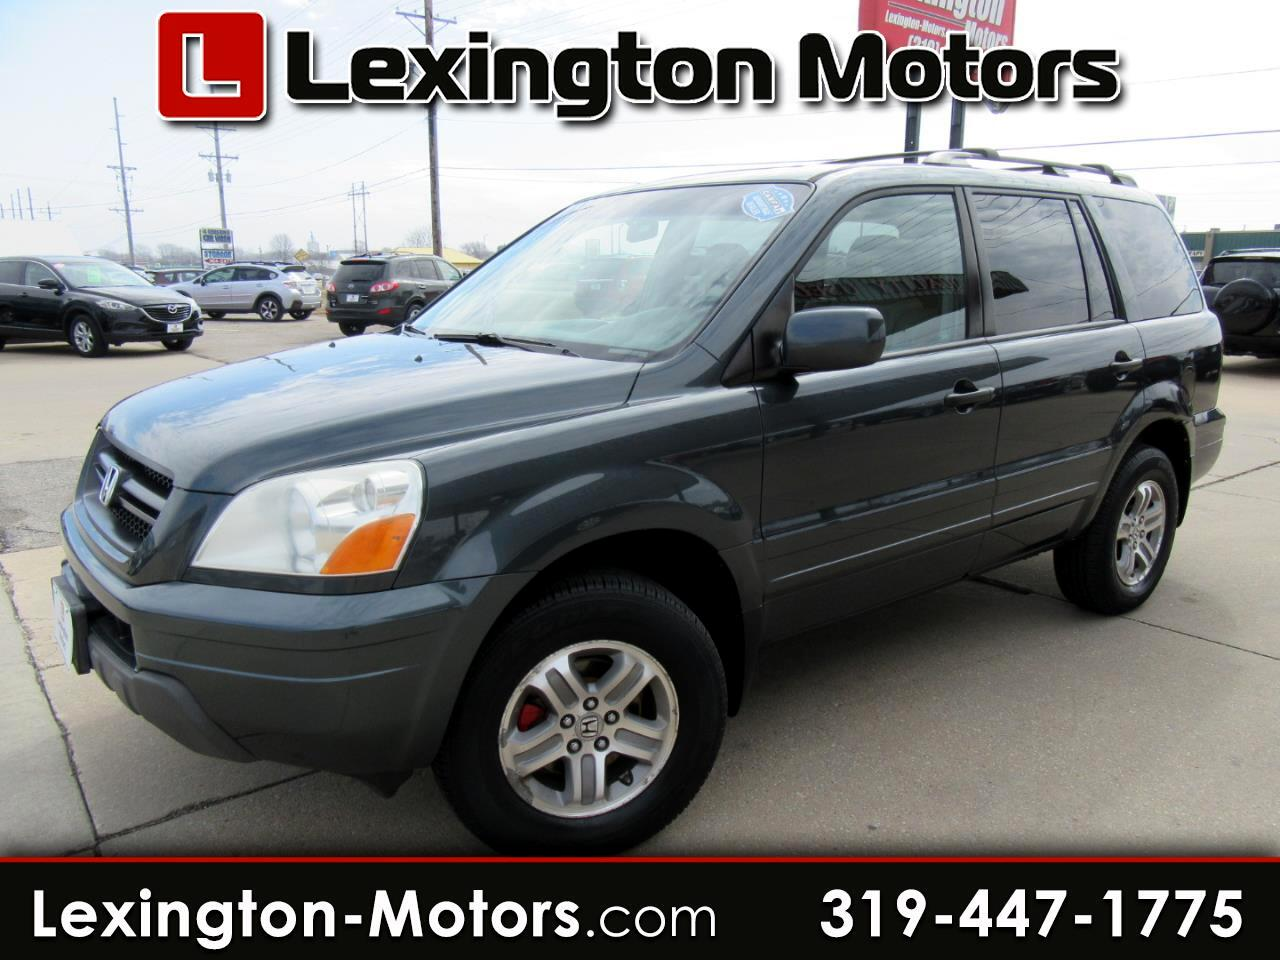 Honda Pilot EX w/ Leather and Navigation 2005